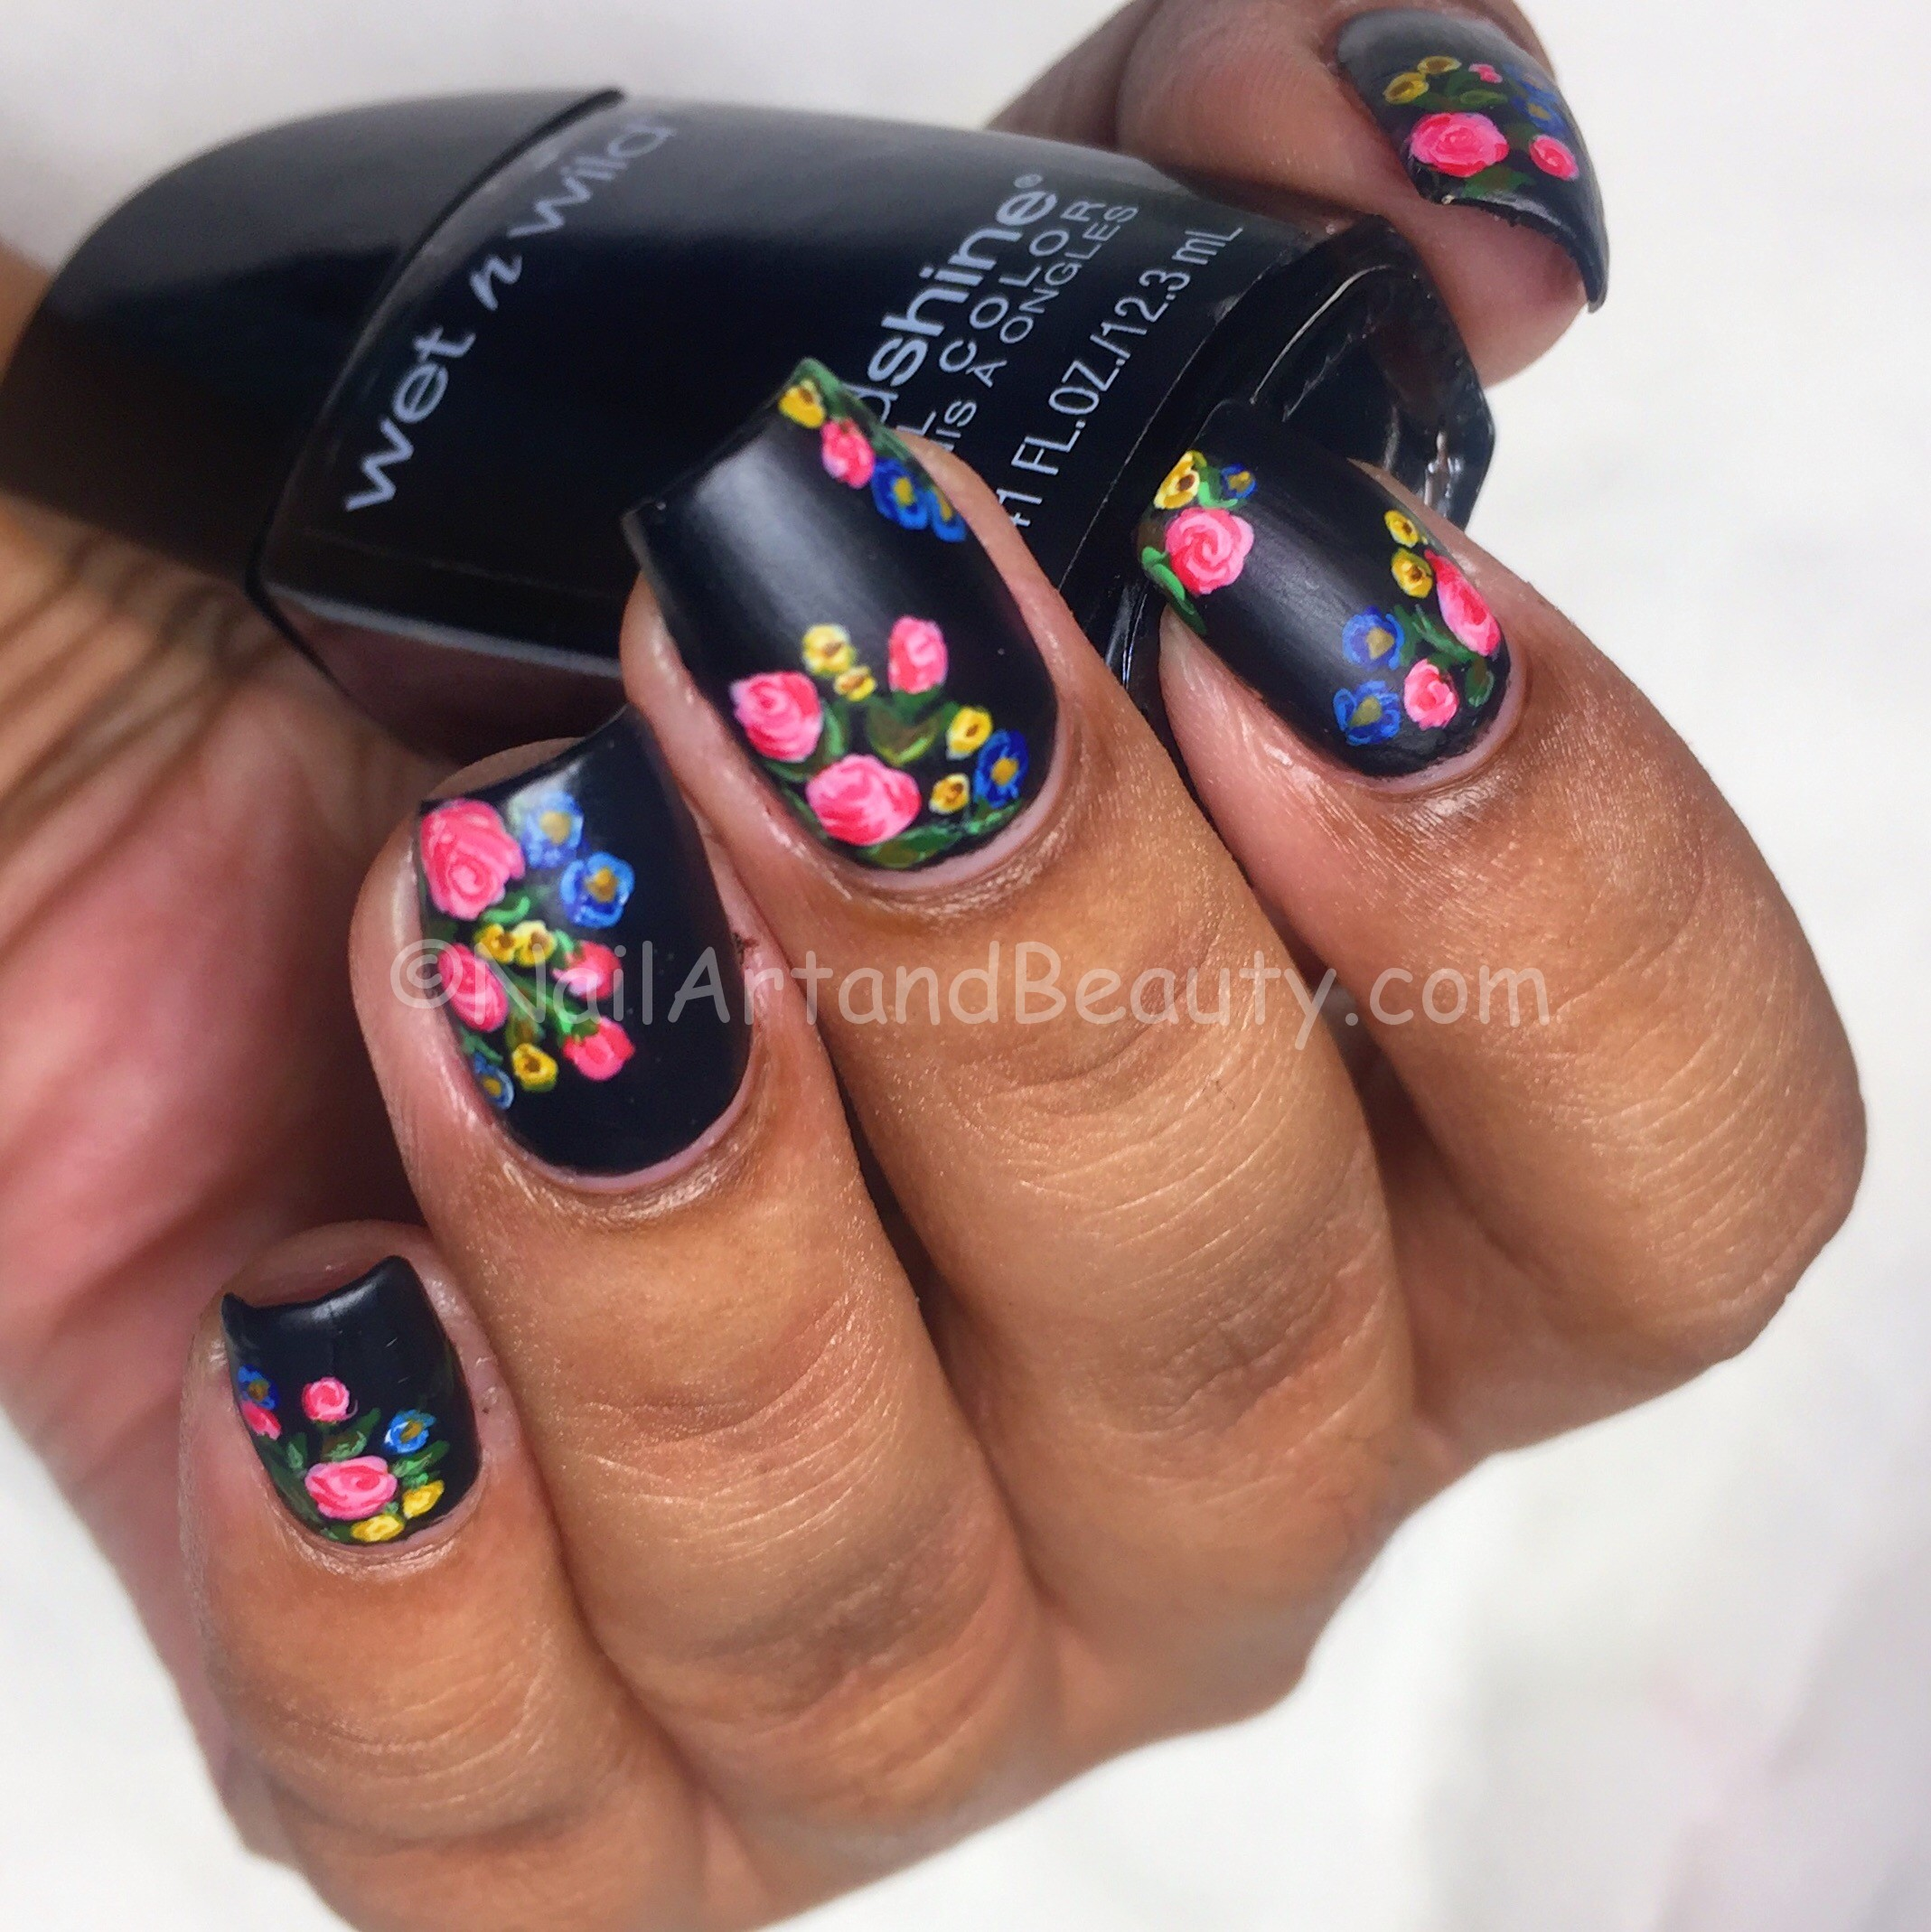 Twin Mani and loads of Roses